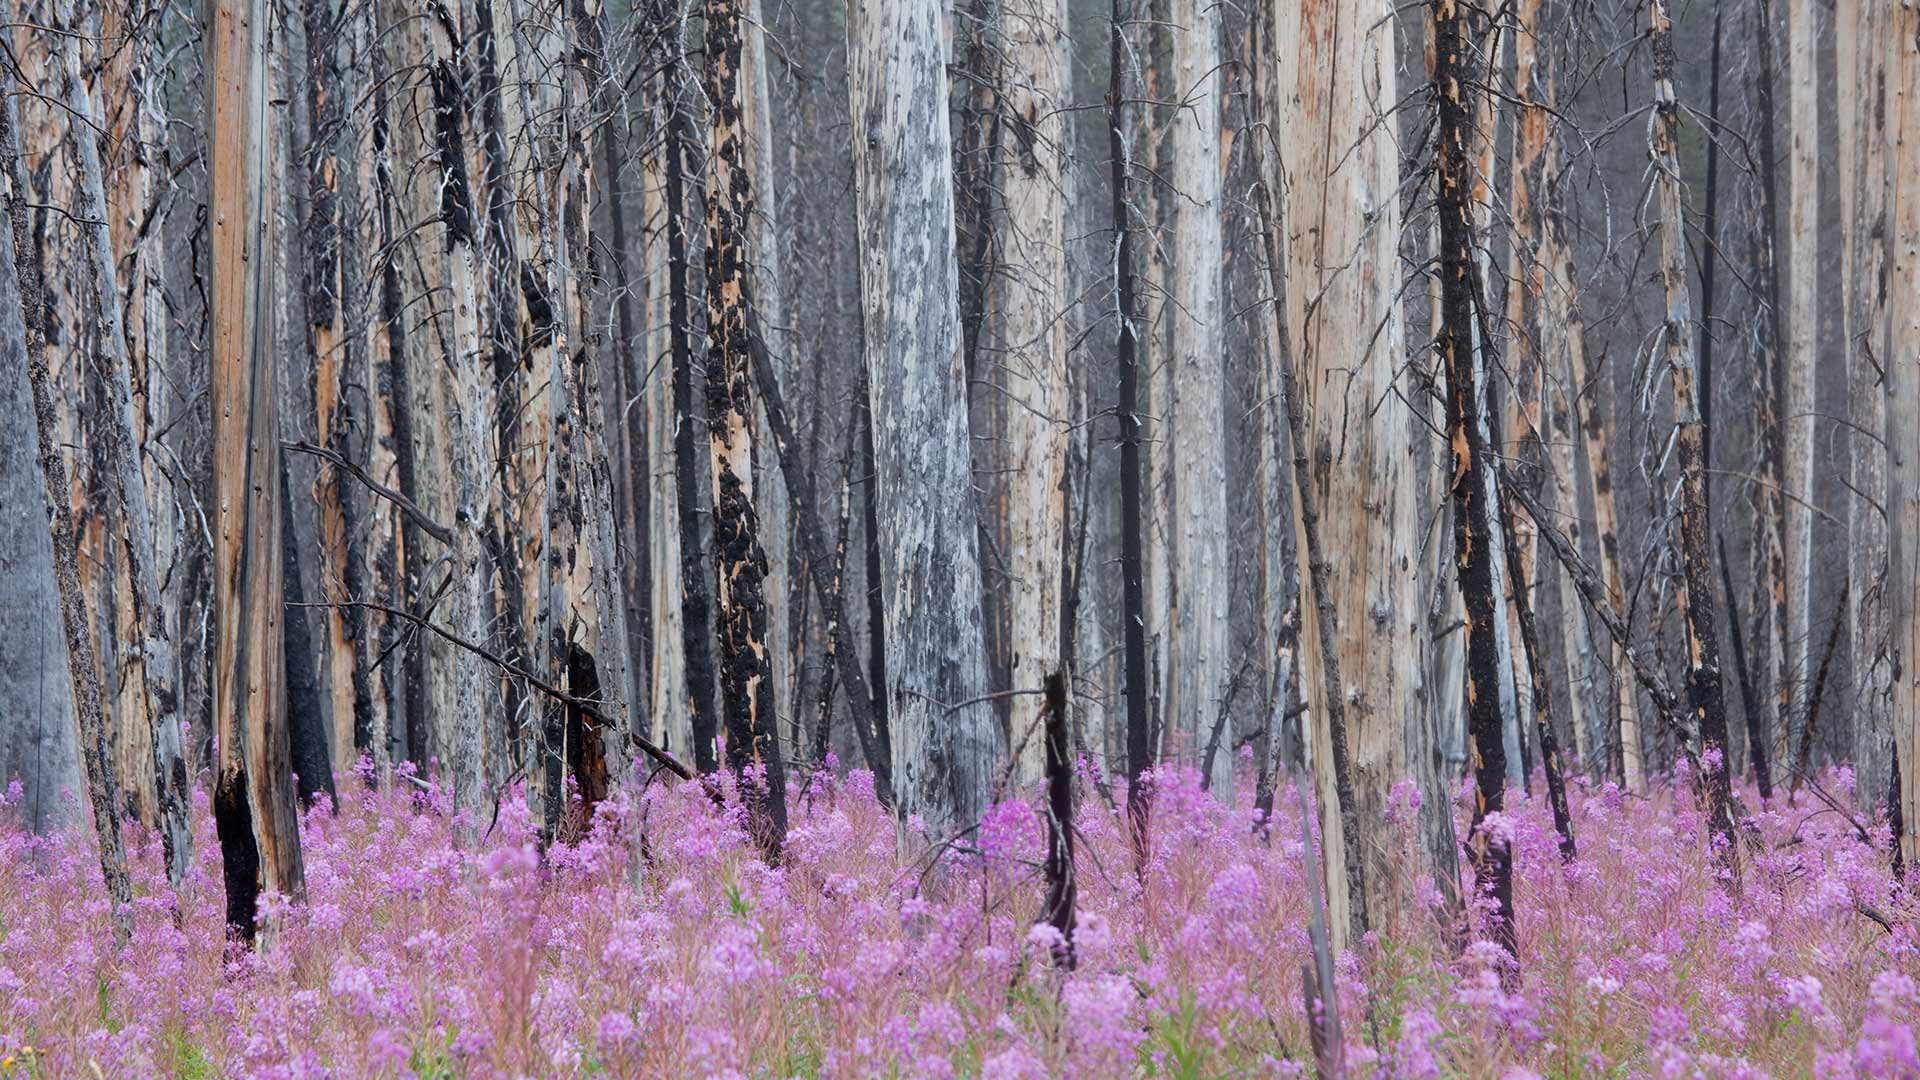 Burnt forest with fireweed in Banff National Park, Alberta, Canada (© ImagineGolf/Getty Images)